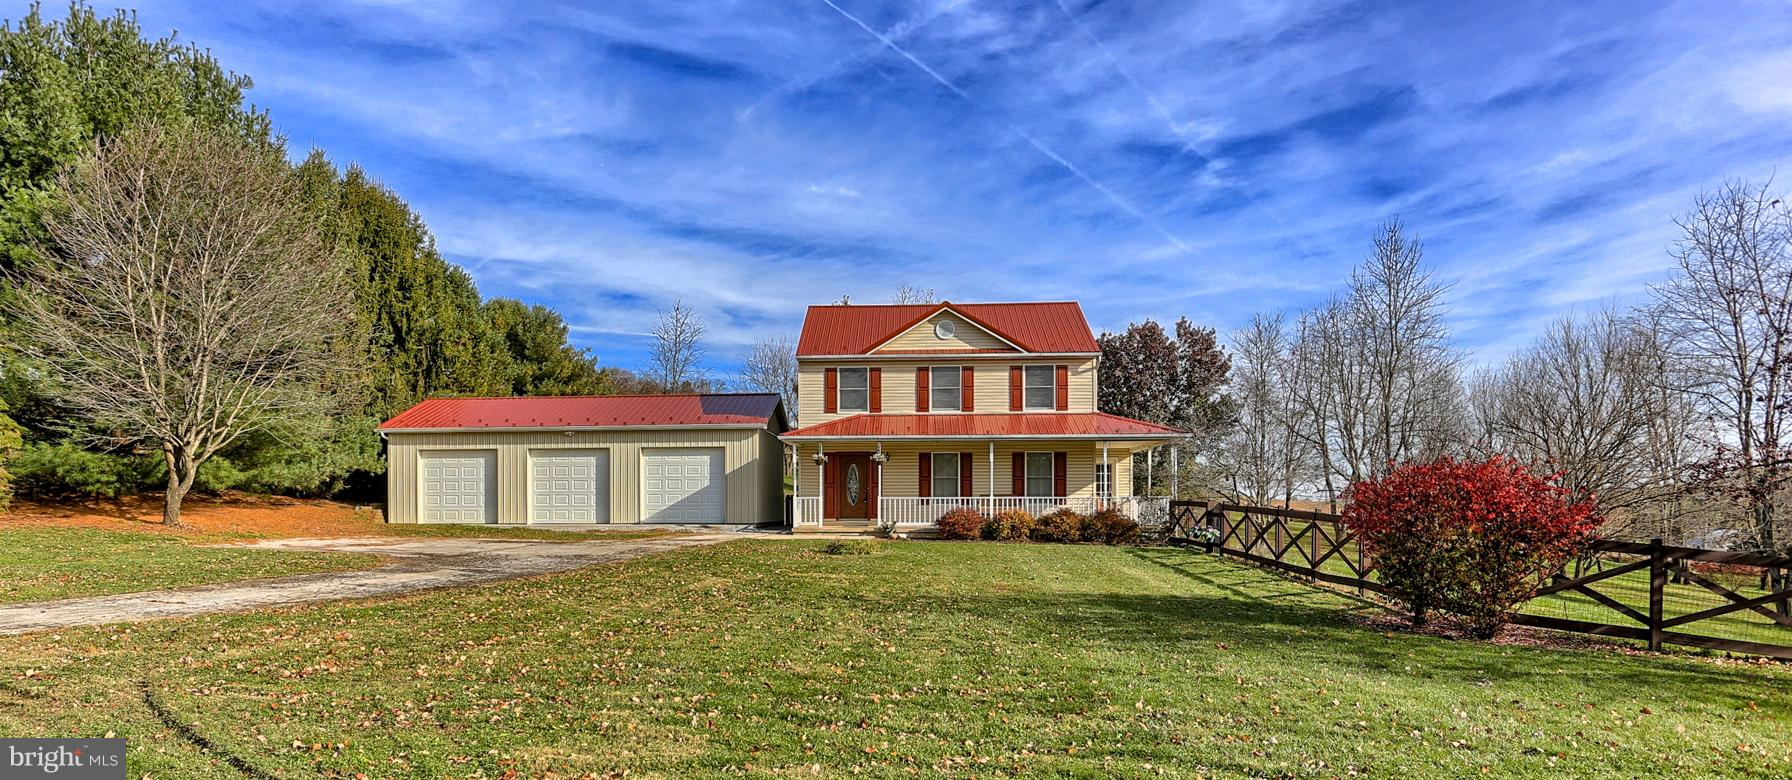 8066 BLUE HILL ROAD, GLENVILLE, PA 17329